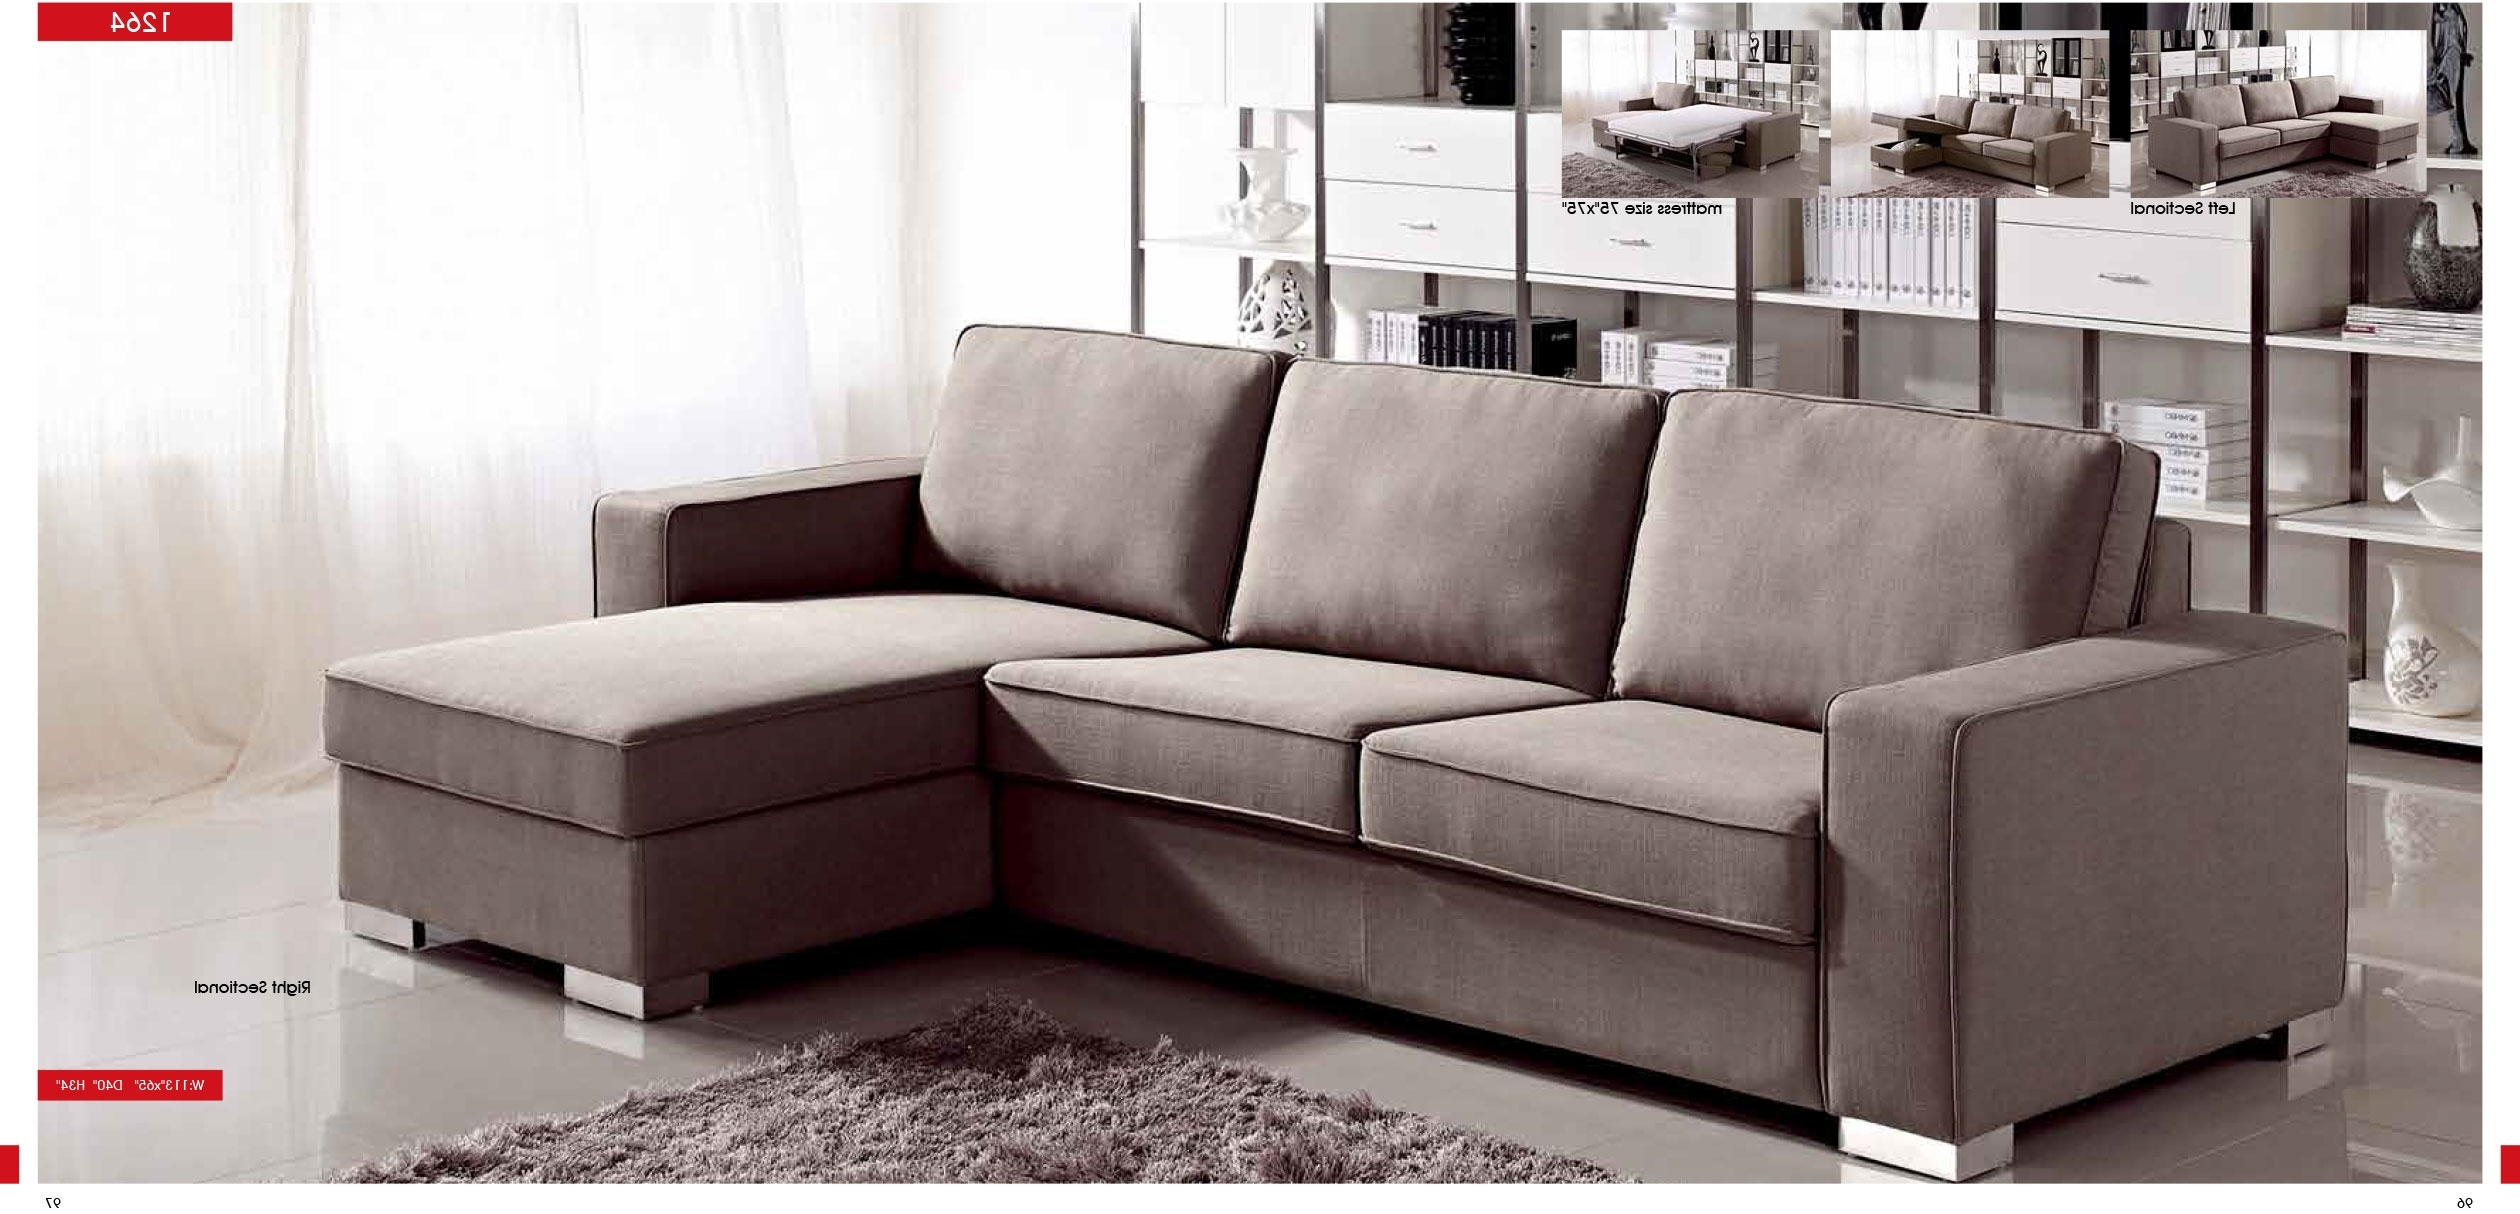 Most Current Sectional Sofas In San Antonio In Sectionals : Sa Furniture, San Antonio Furniture Of Texas (View 8 of 15)